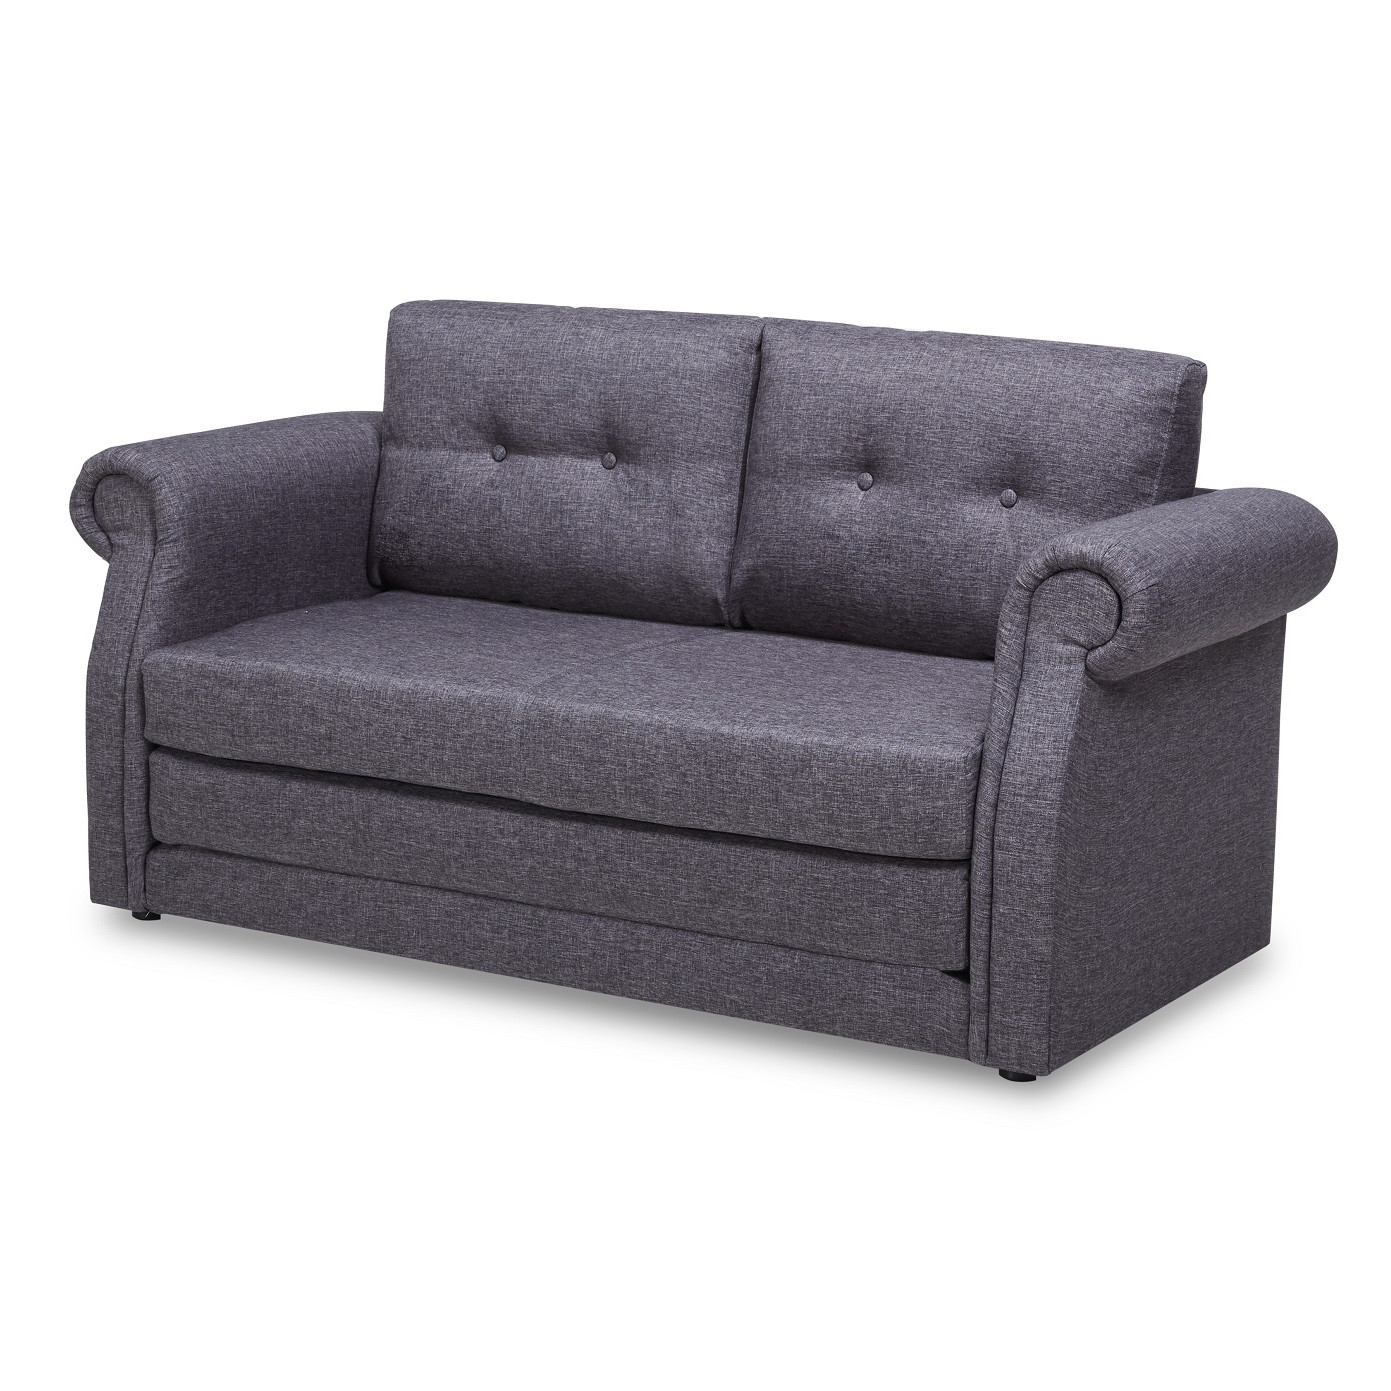 Walmart Sleeper Loveseat | Ikea Sofa Beds | Loveseat Sleeper